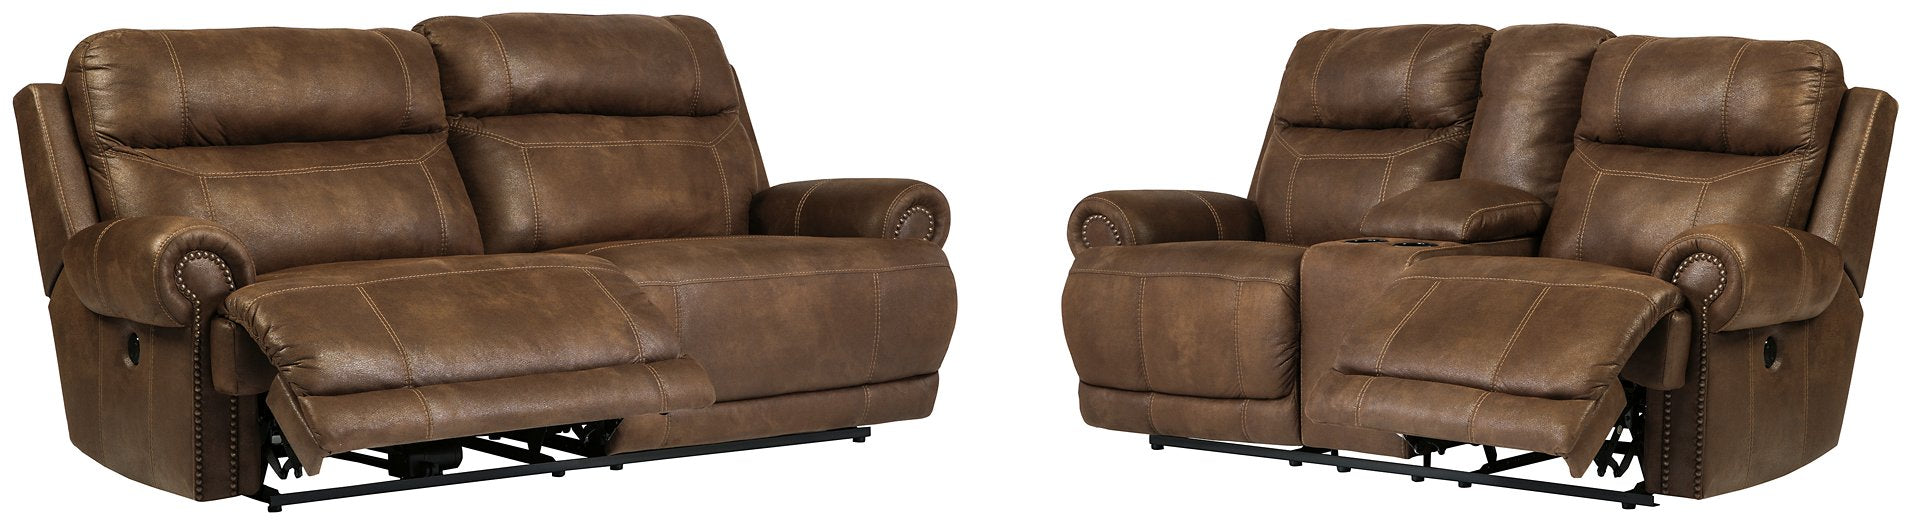 Austere Signature Design Sofa 2-Piece Upholstery Package